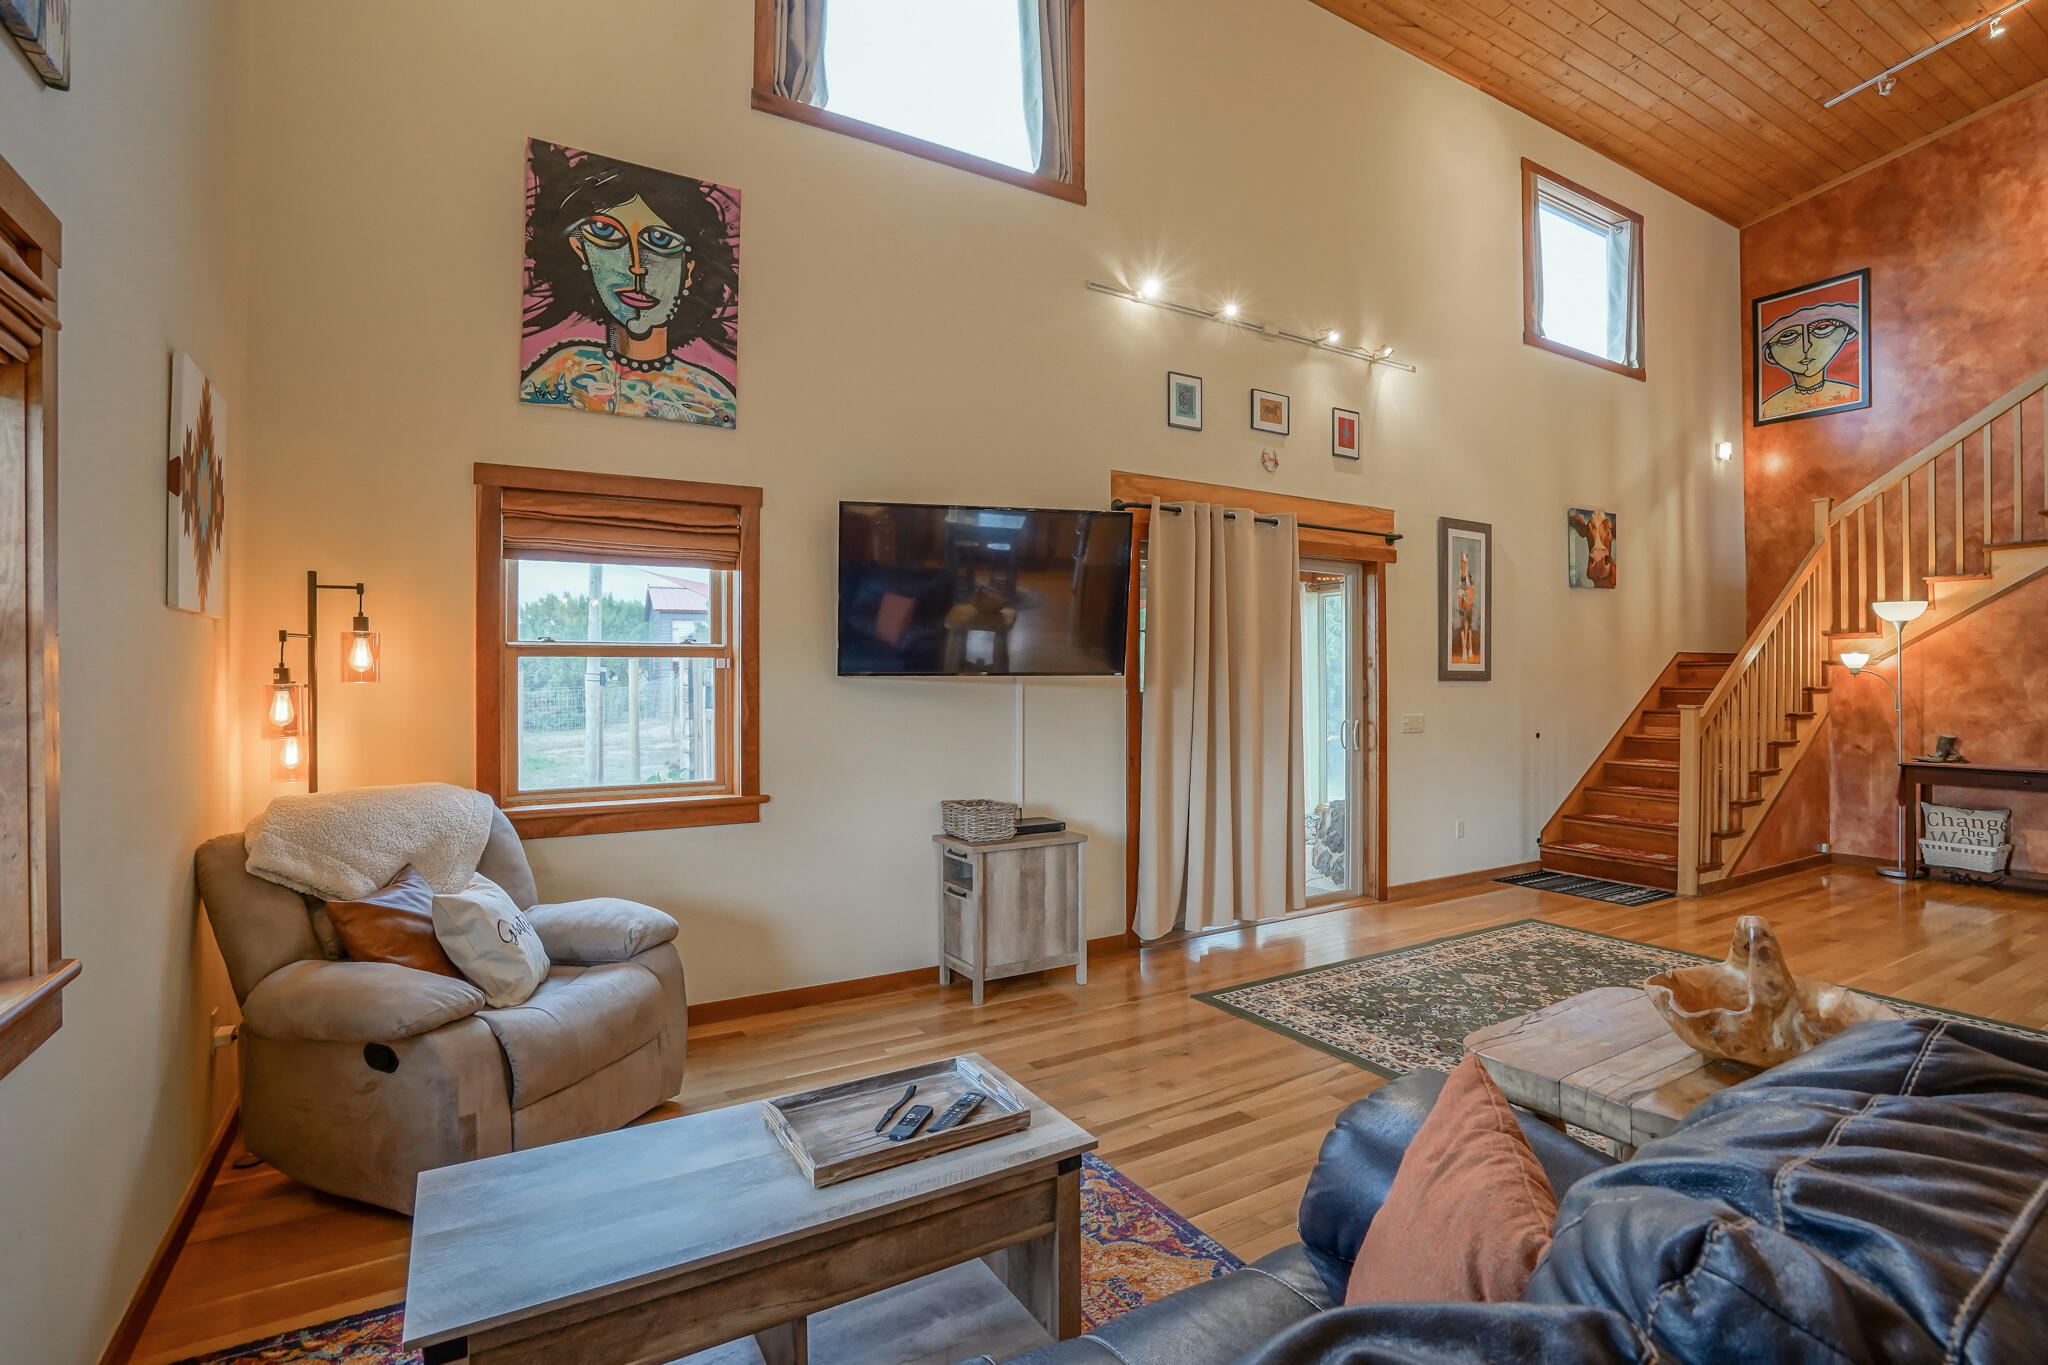 Motivated Sellers! This is a property you must see to appreciate! Custom-built home with thoughtful upgrades both inside and out! Beautiful immaculately kept 5.04 acres of land! This unique property is ideal for animal lovers and was designed by an architect who partnered with animal care facilities worldwide to set up 4 barns with electricity and water to allow best-in-class care for any animals you may have. Licensed professionals built every building with county permits.  RV-covered parking, two 30-amp and one 50-amp hookup. Beautiful 20ft pine ceilings in the main living area with attached sunroom. Kitchen has cherry pecan cabinets with a hard maple top. Virtual tour available! Ask your agent for a printout of the many upgrades to the home and further information about the property!